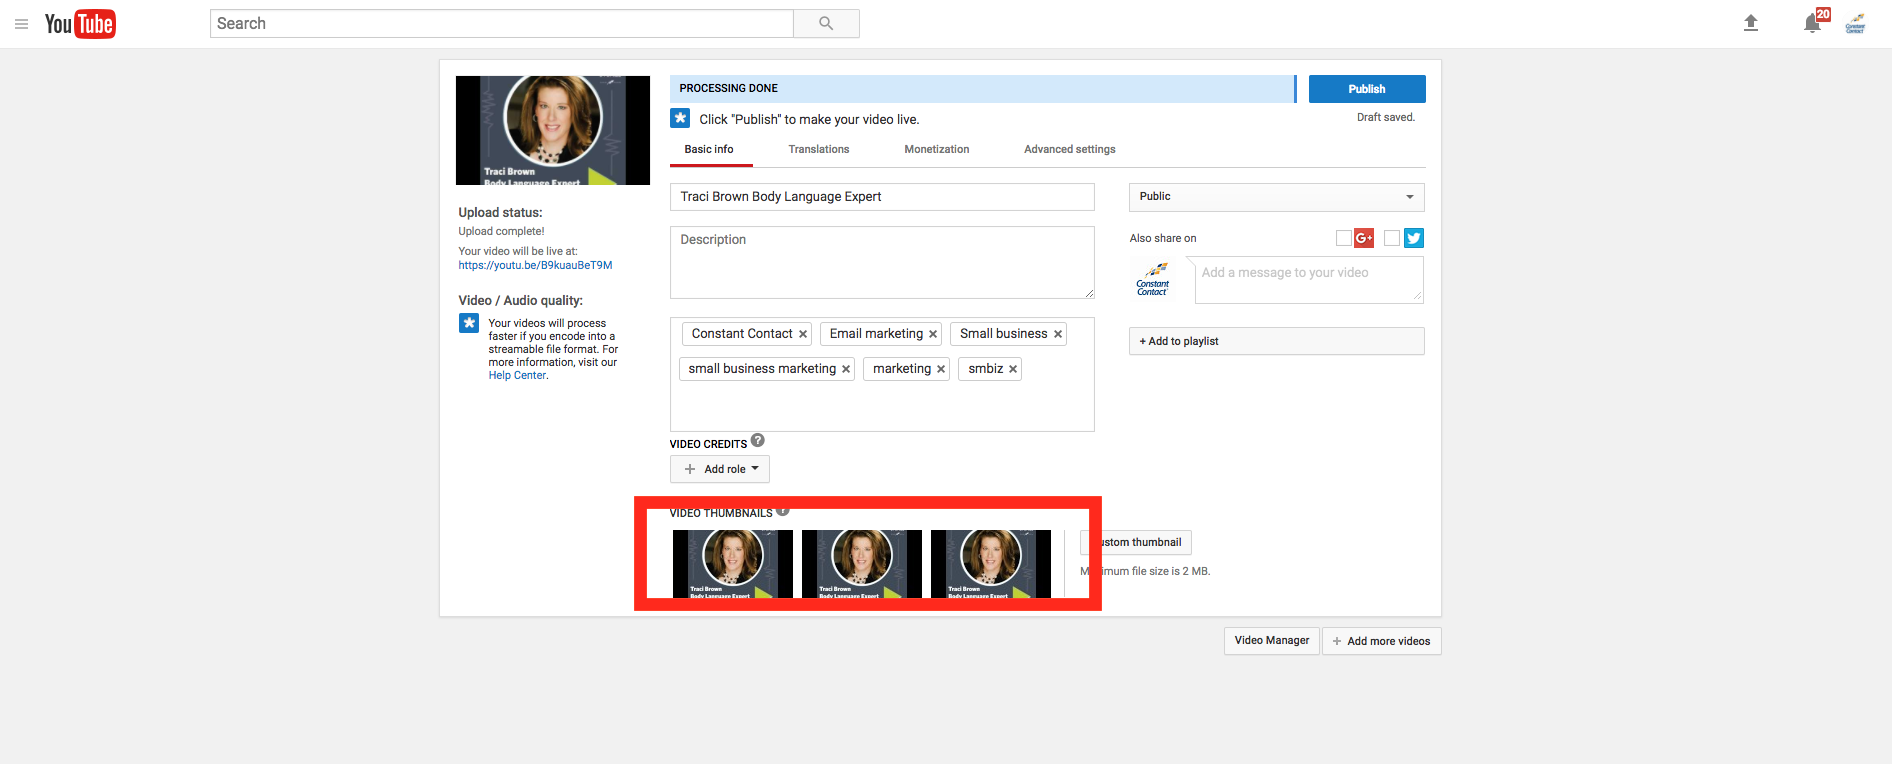 Where to upload video 52